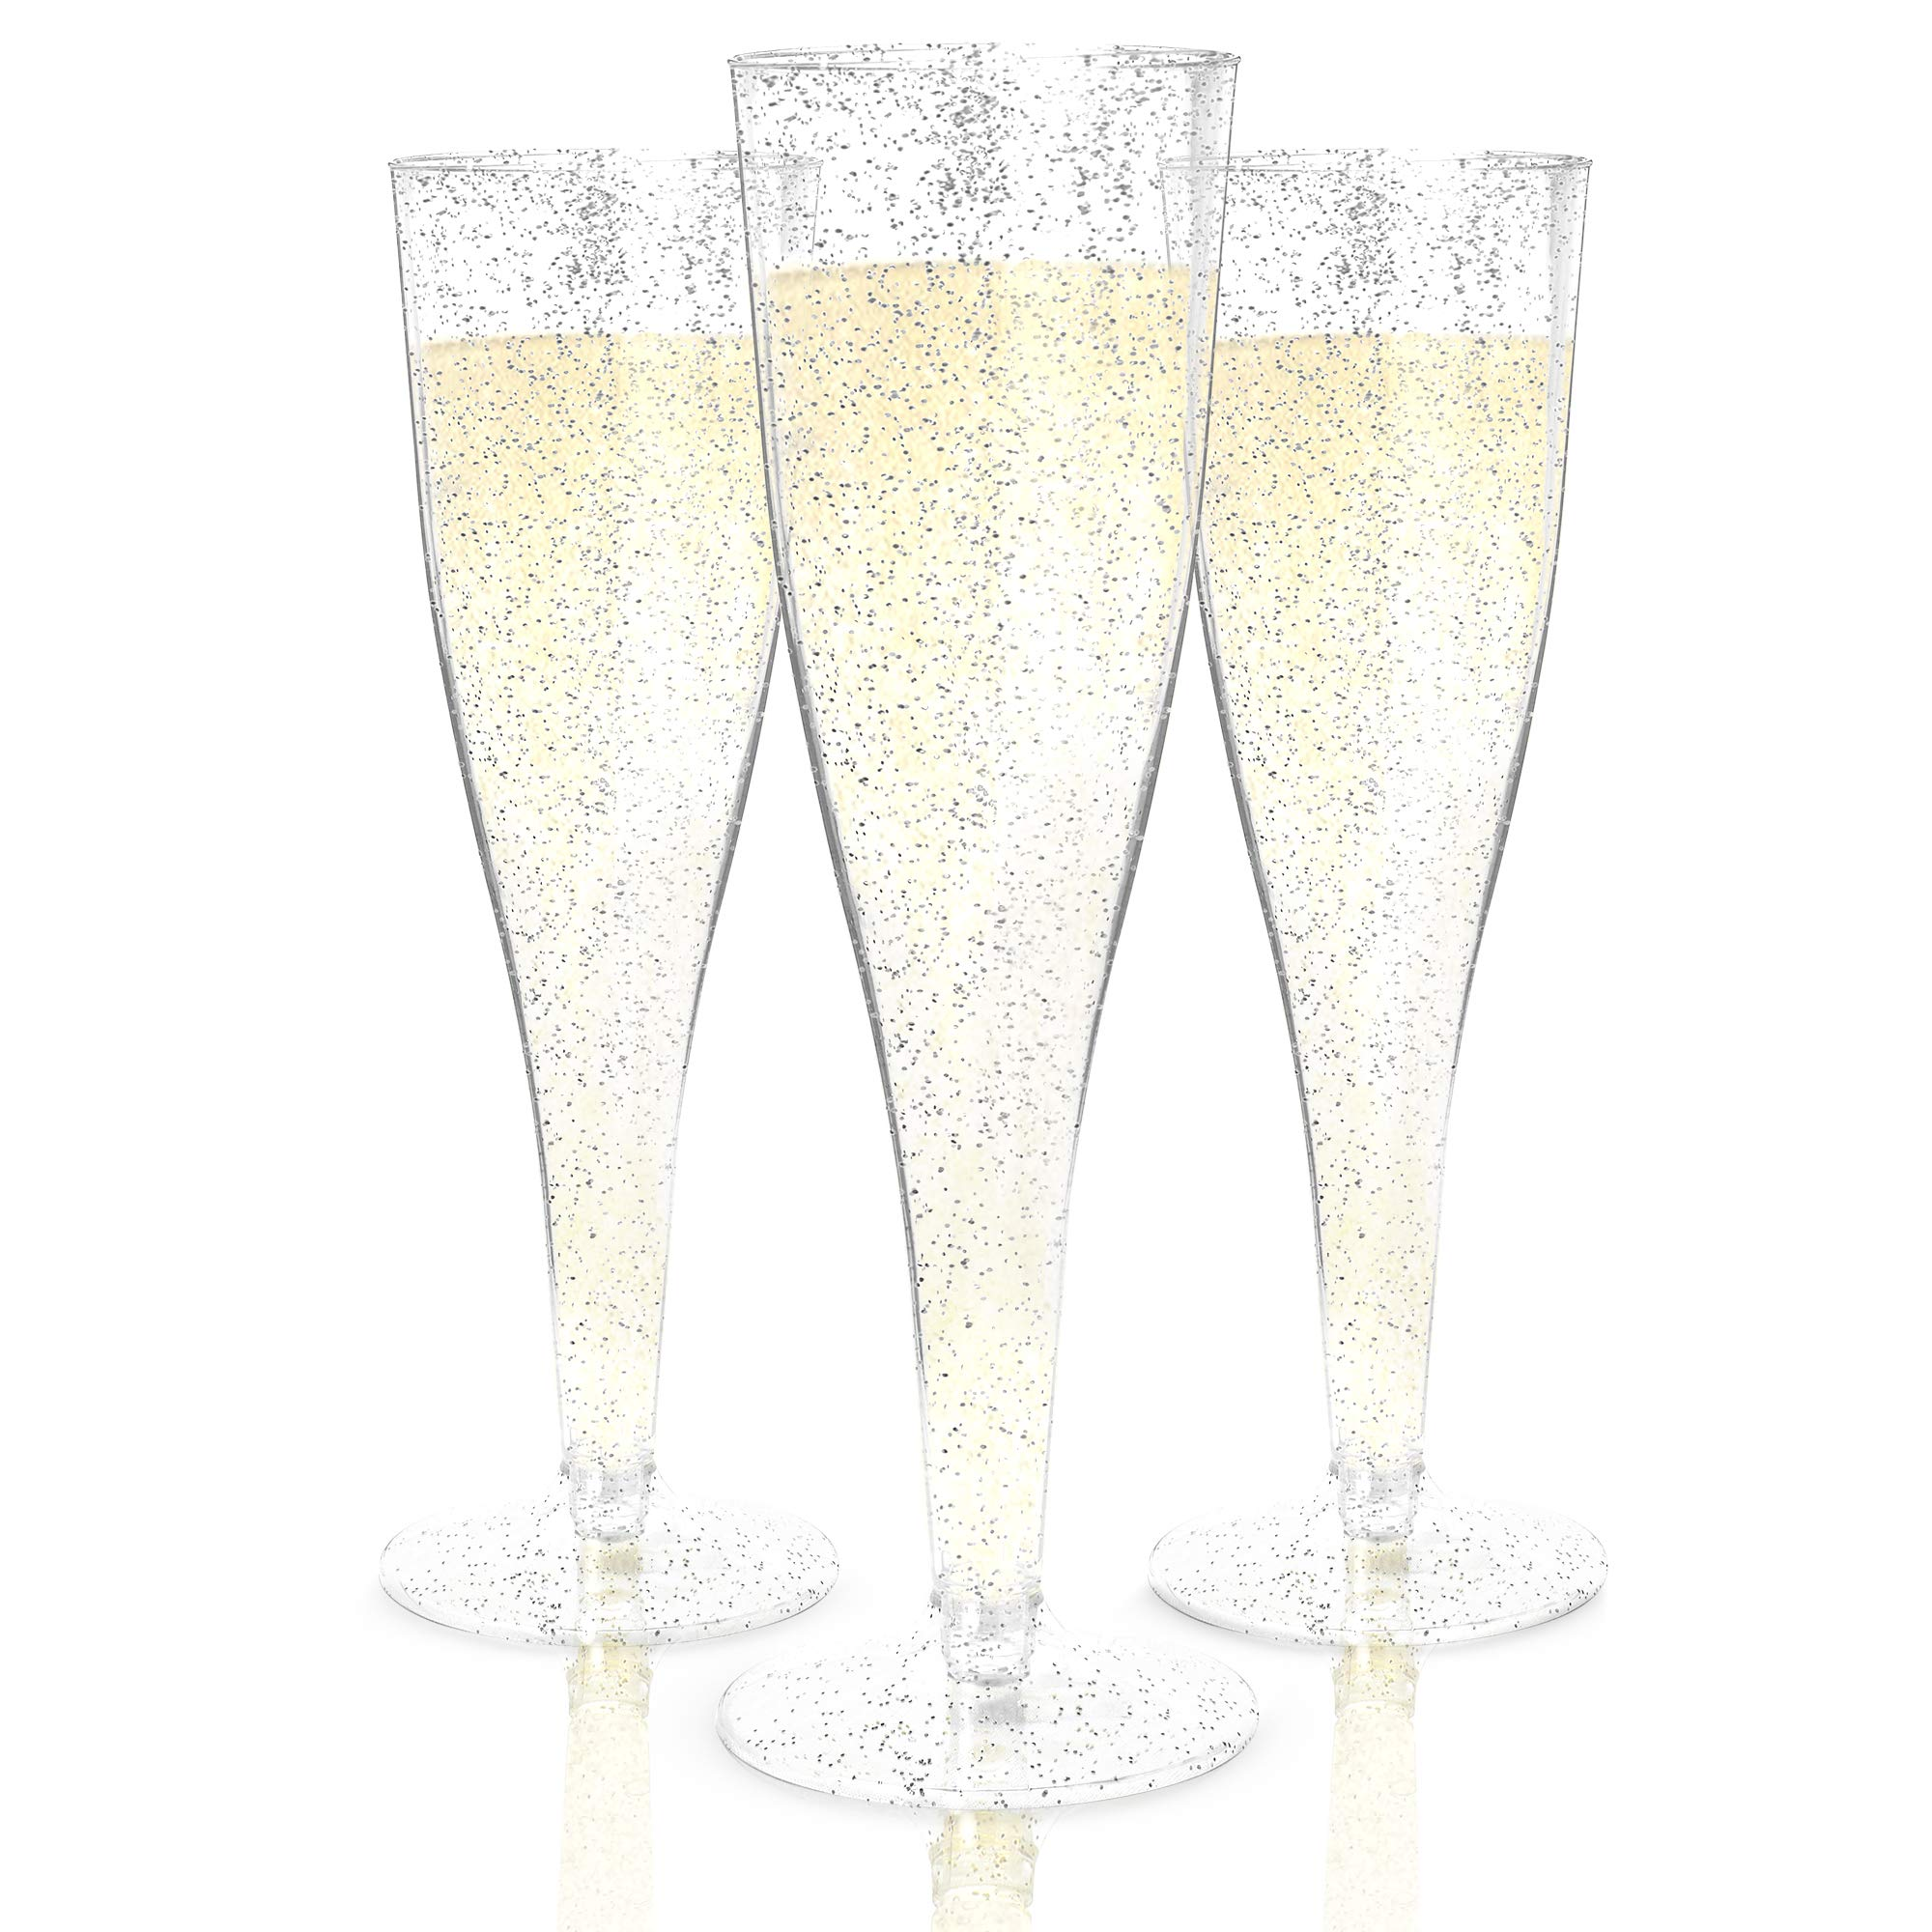 Plastic Champagne Flutes Disposable - 100 Pack   Silver Glitter Plastic Champagne Glasses for Parties   Glitter Clear Plastic Cups   Plastic Toasting Glasses   Wedding Party Bulk Pack